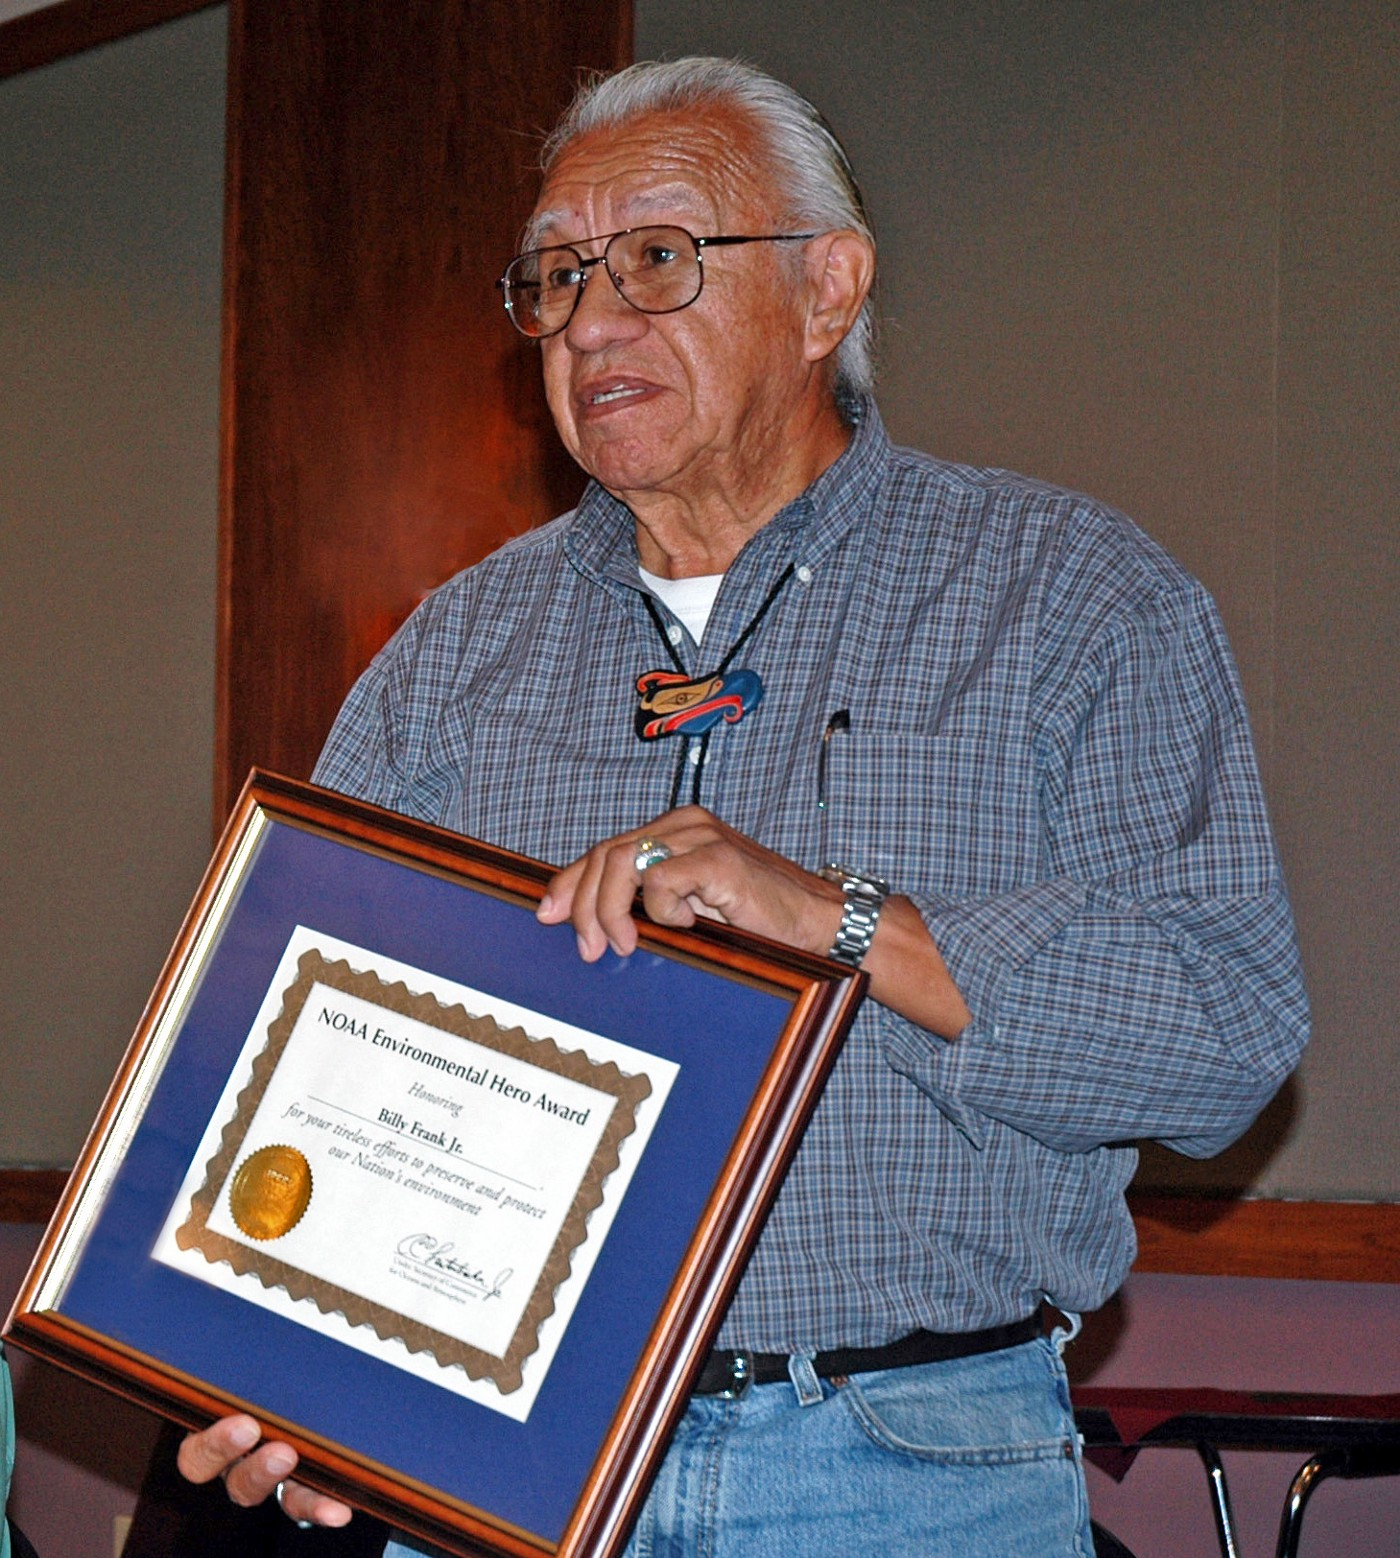 Photo of Billy Frank Jr. holding an award certificate from NOAA. Photo credit: Northwest Indian Fisheries Commission.